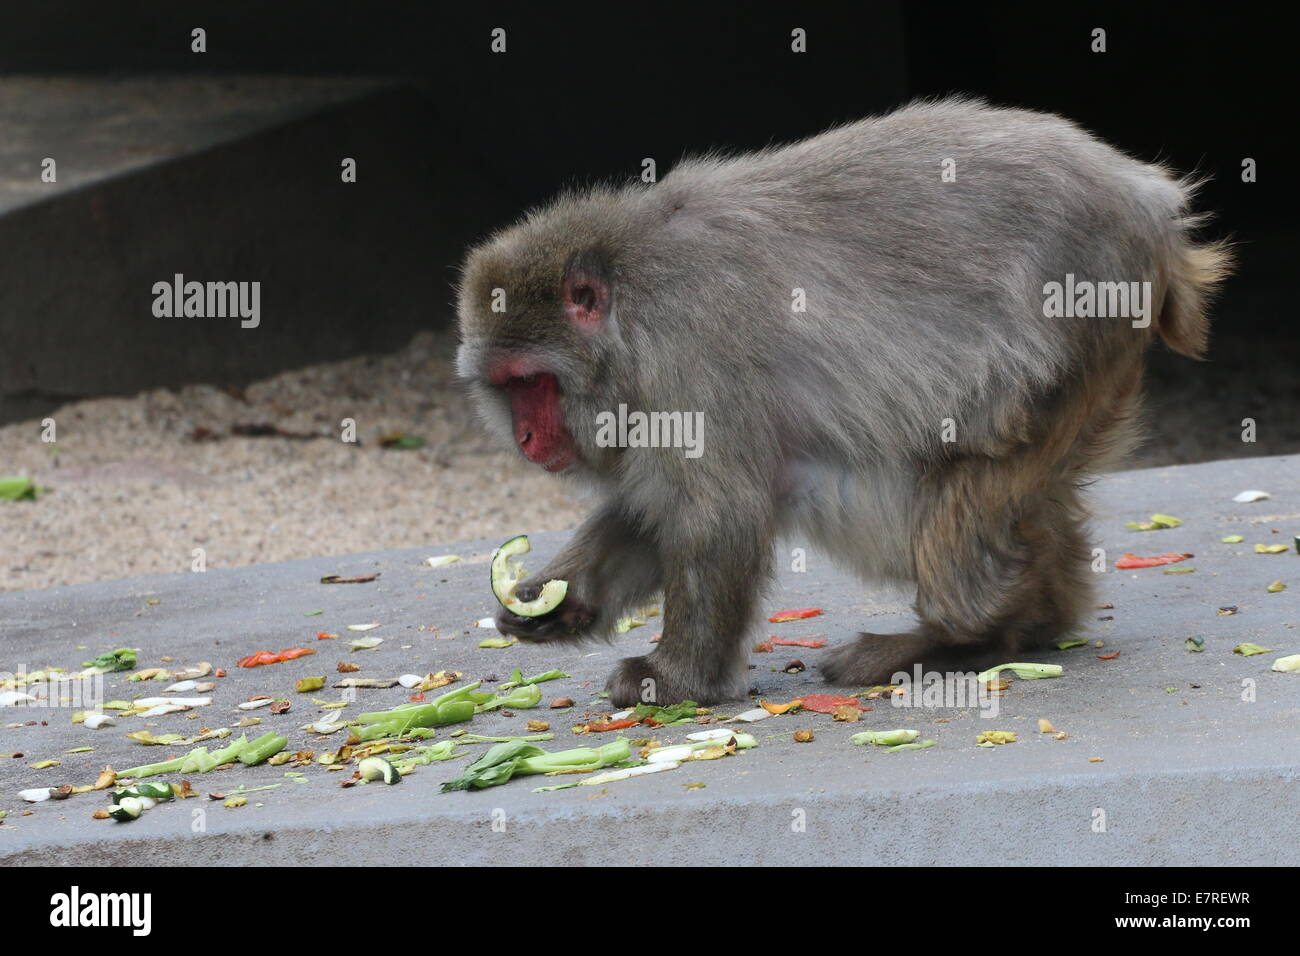 Japanese macaque or Snow monkey (Macaca fuscata) eating fruit and